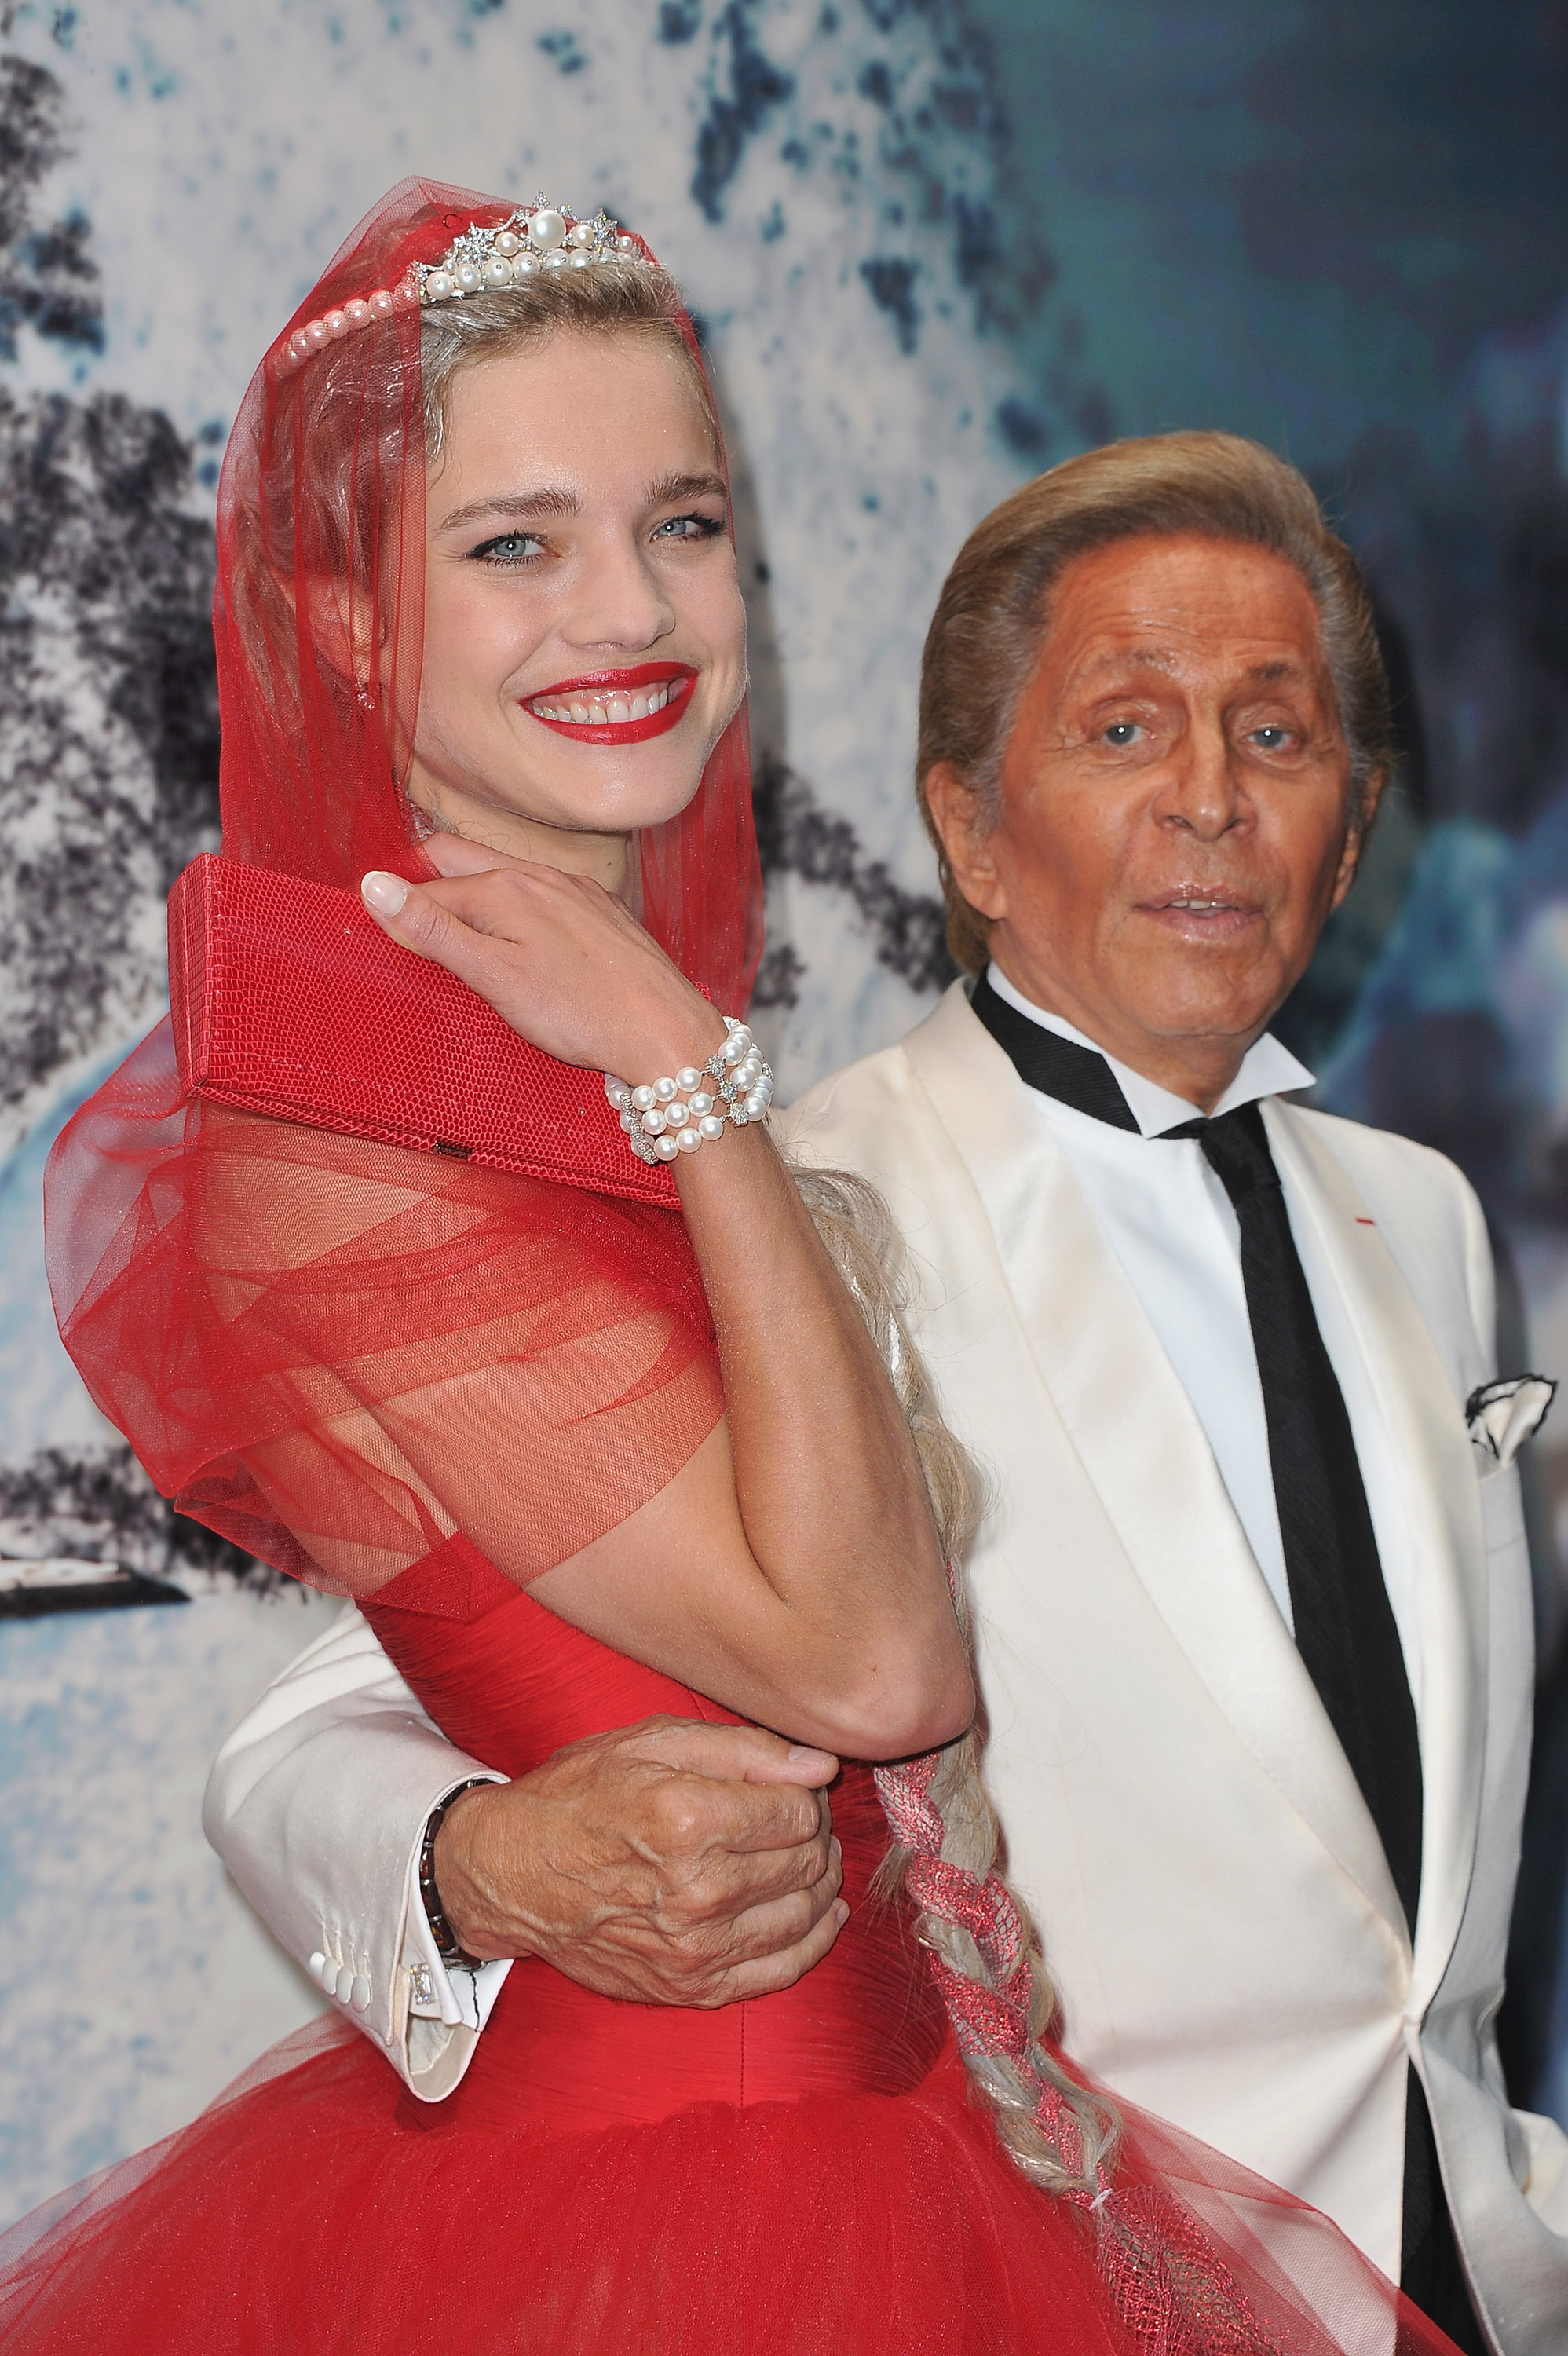 A closer look at Natalia and Valentino.